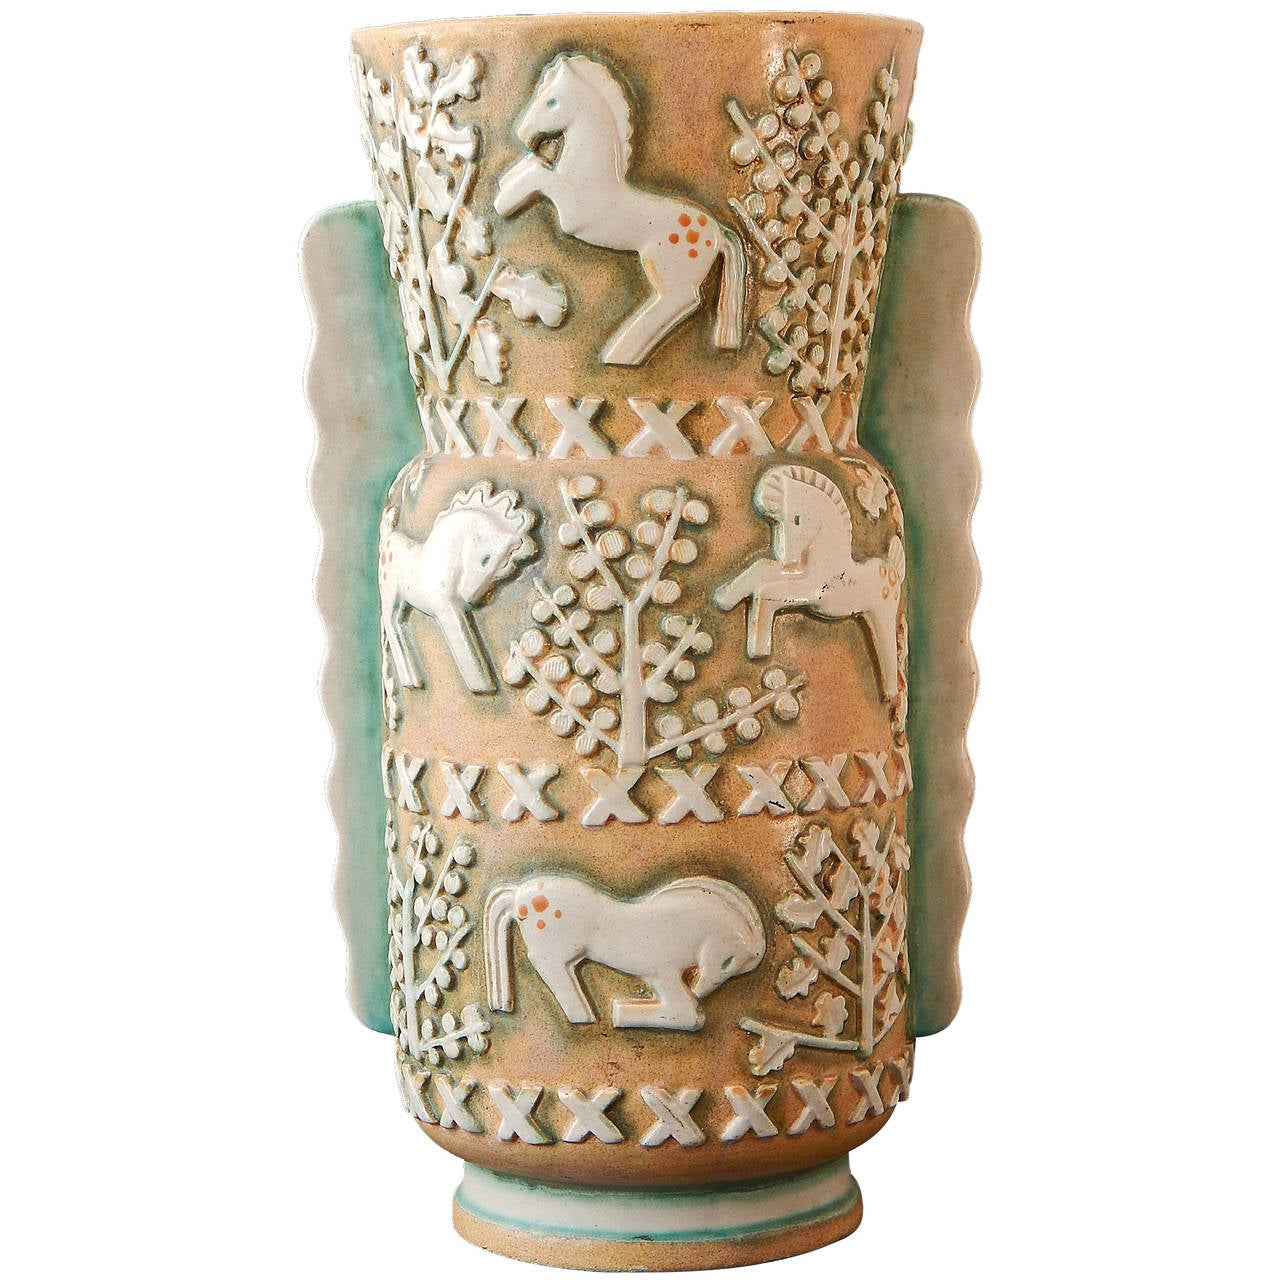 Spotted ponies rare art deco floor vase by ernest dhossche for spotted ponies rare art deco floor vase by ernest dhossche for floridaeventfo Image collections